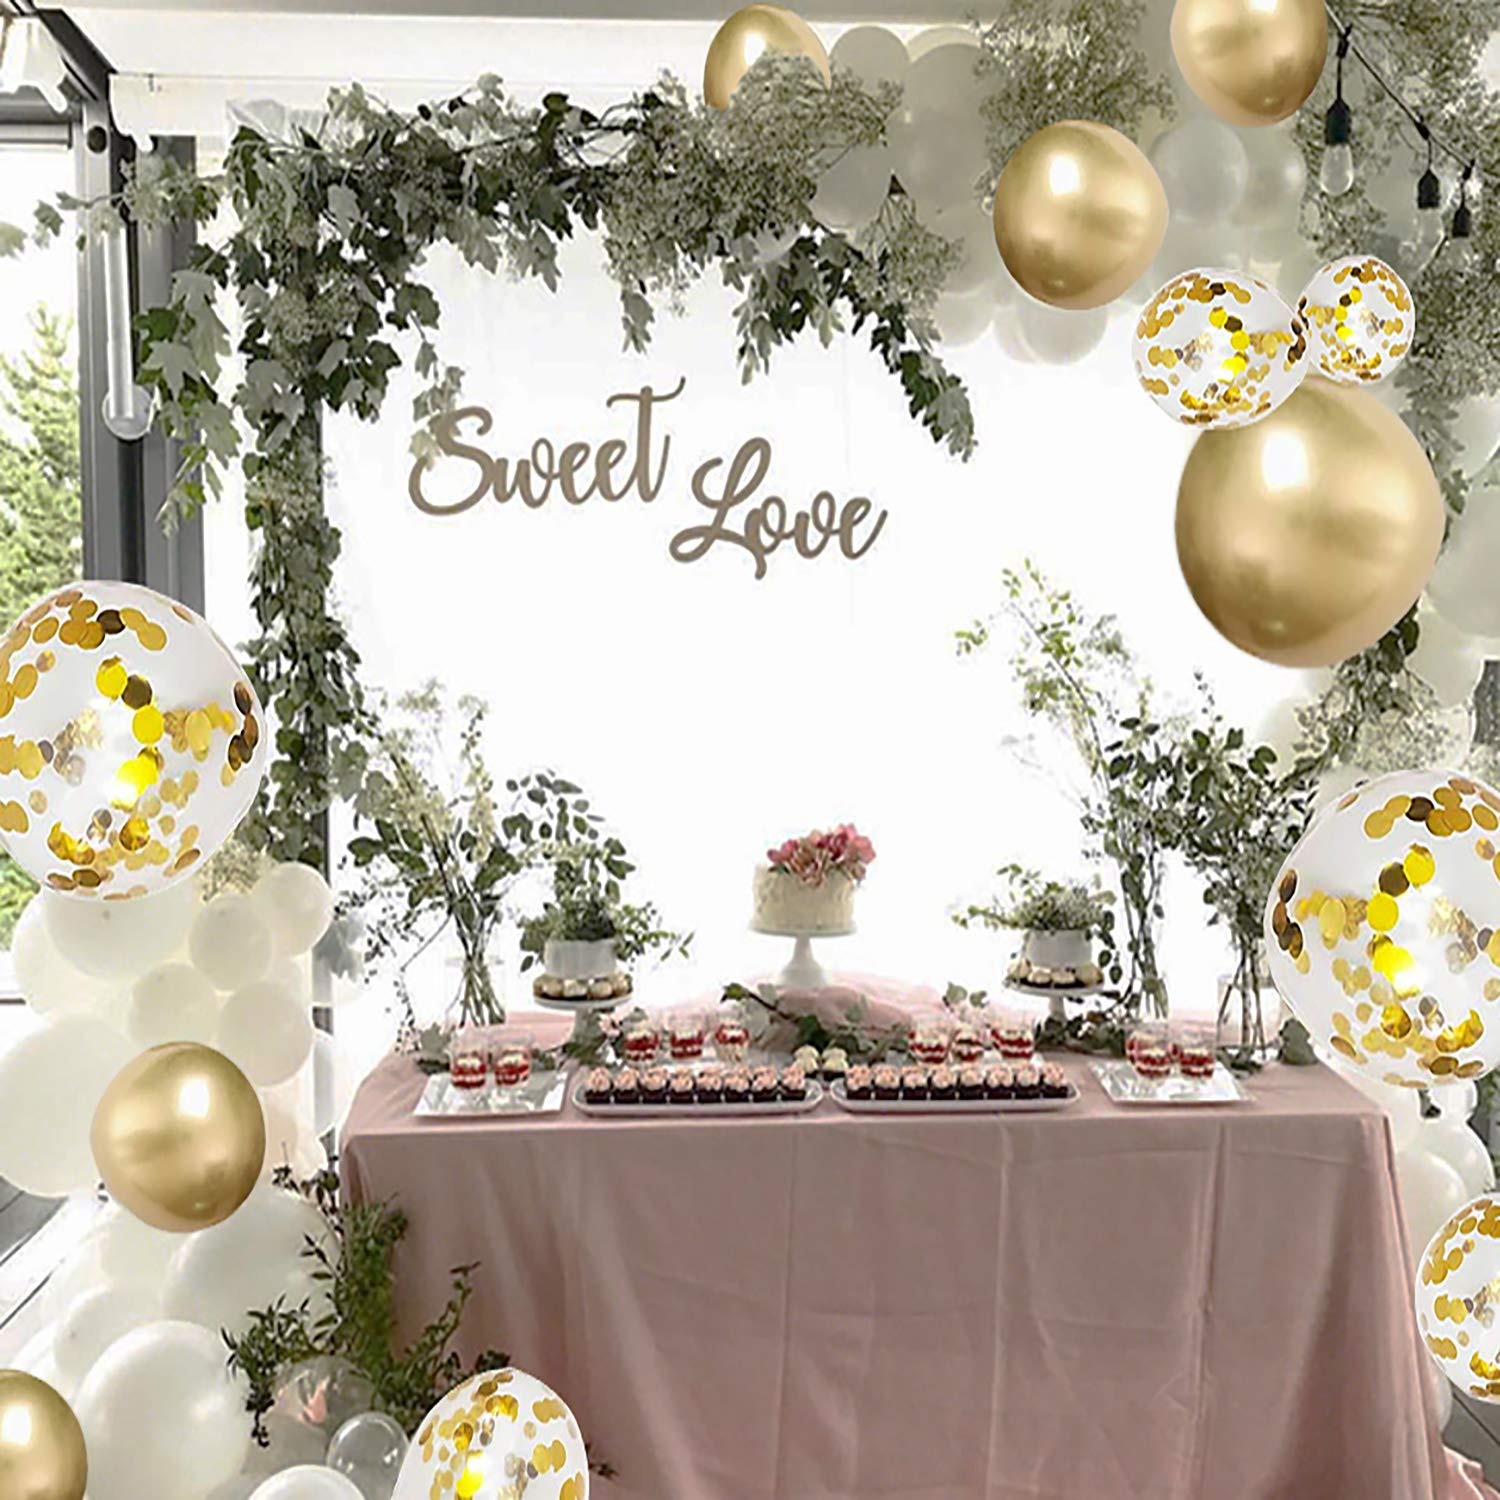 Balloon Arch Kit, Balloon Garland kit - 12 Inch Balloons 50 Pcs Pack-White, Gold, Golden Confettii Balloons with Ribbon and Balloon Tape Strips, for More Parties